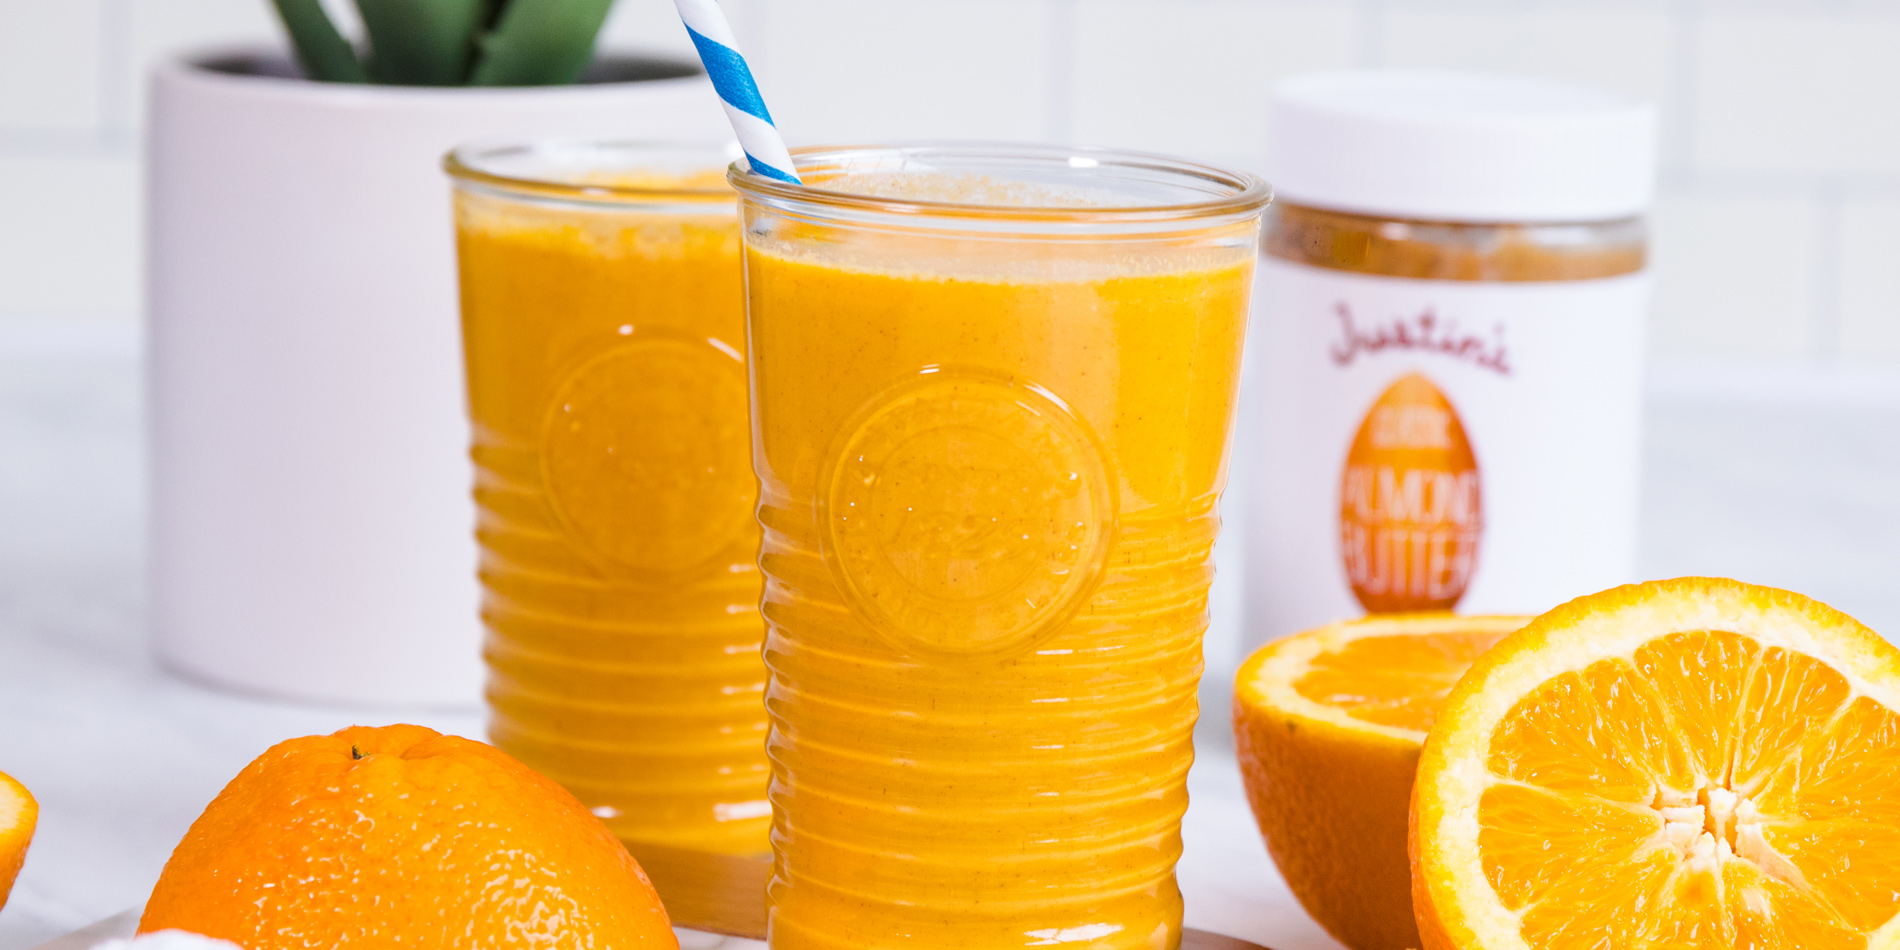 Orange Creamsicle Smoothie in tall glass cups with a white and blue straw with oranges in the background